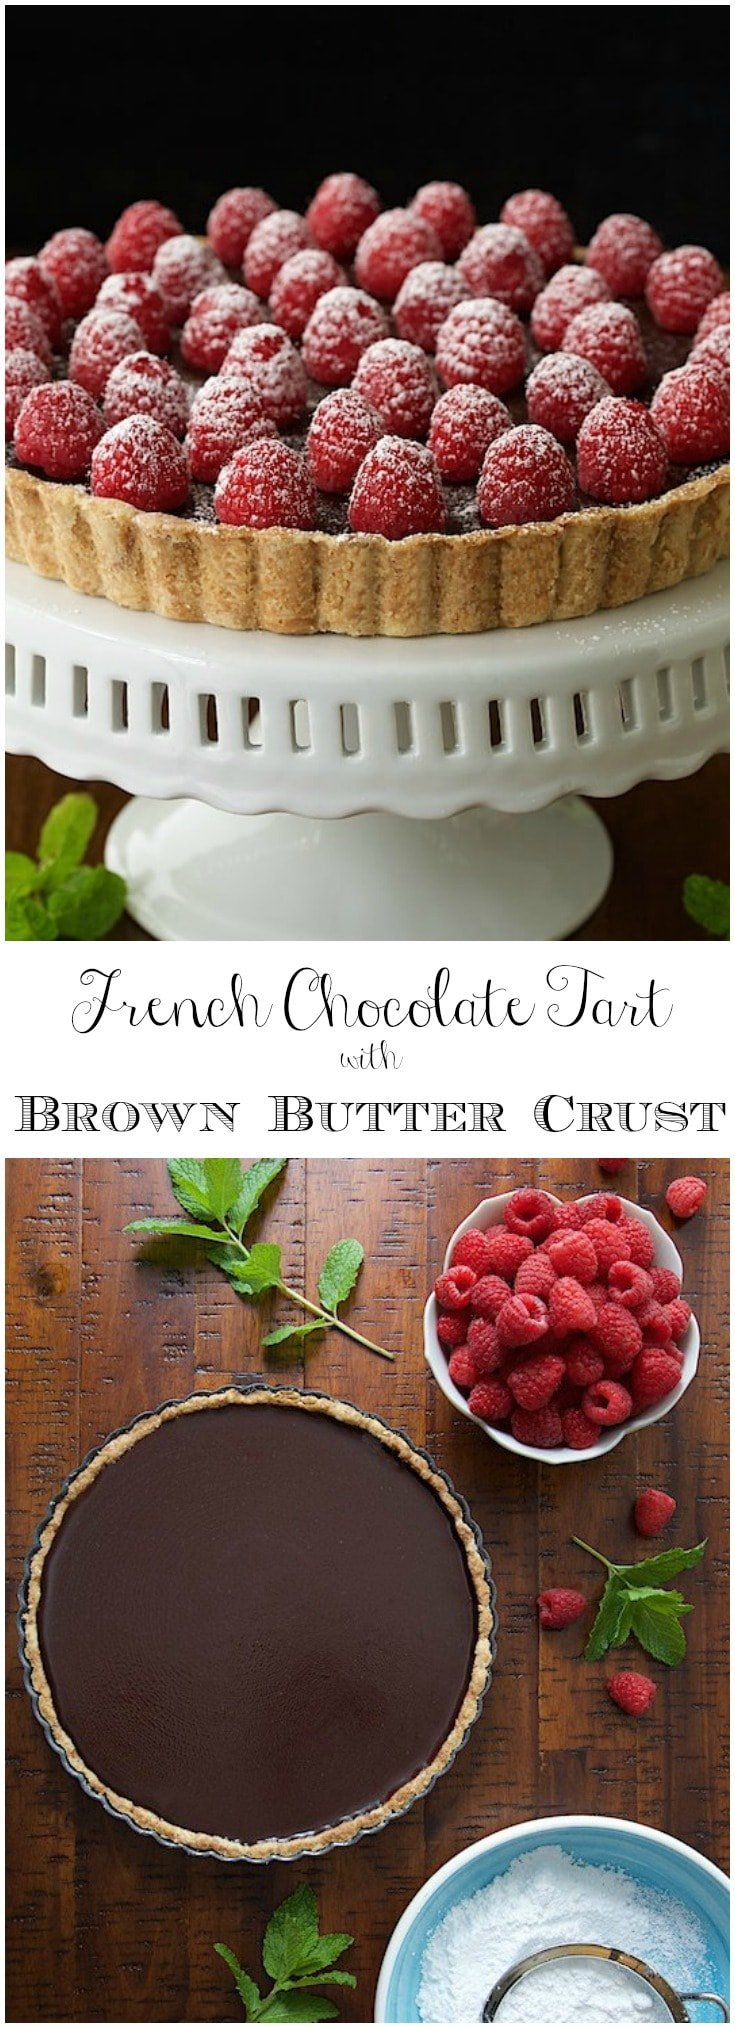 This tart is super simple, decadent, authentically French and probably the best chocolate dessert you